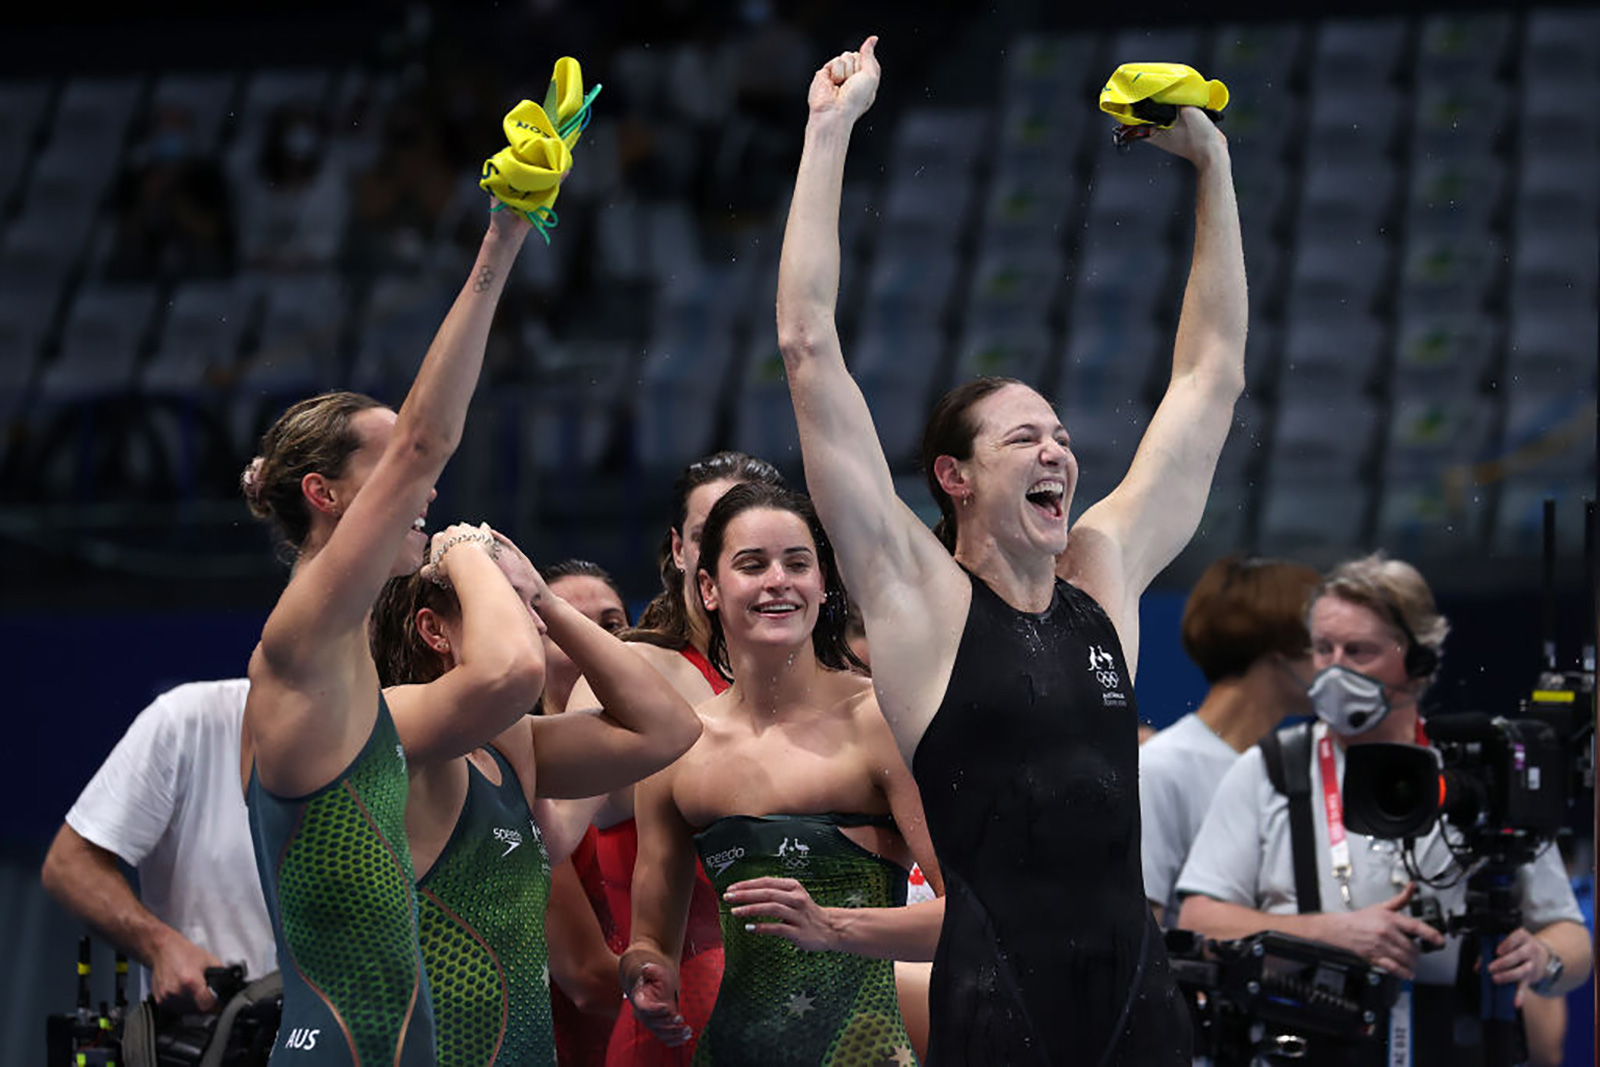 Australian swimmers Emma McKeon, Chelsea Hodges, Kaylee McKeown and Cate Campbell react after winning the gold medal and breaking the Olympic recordfor the 4x100 meter medley relay on Sunday.